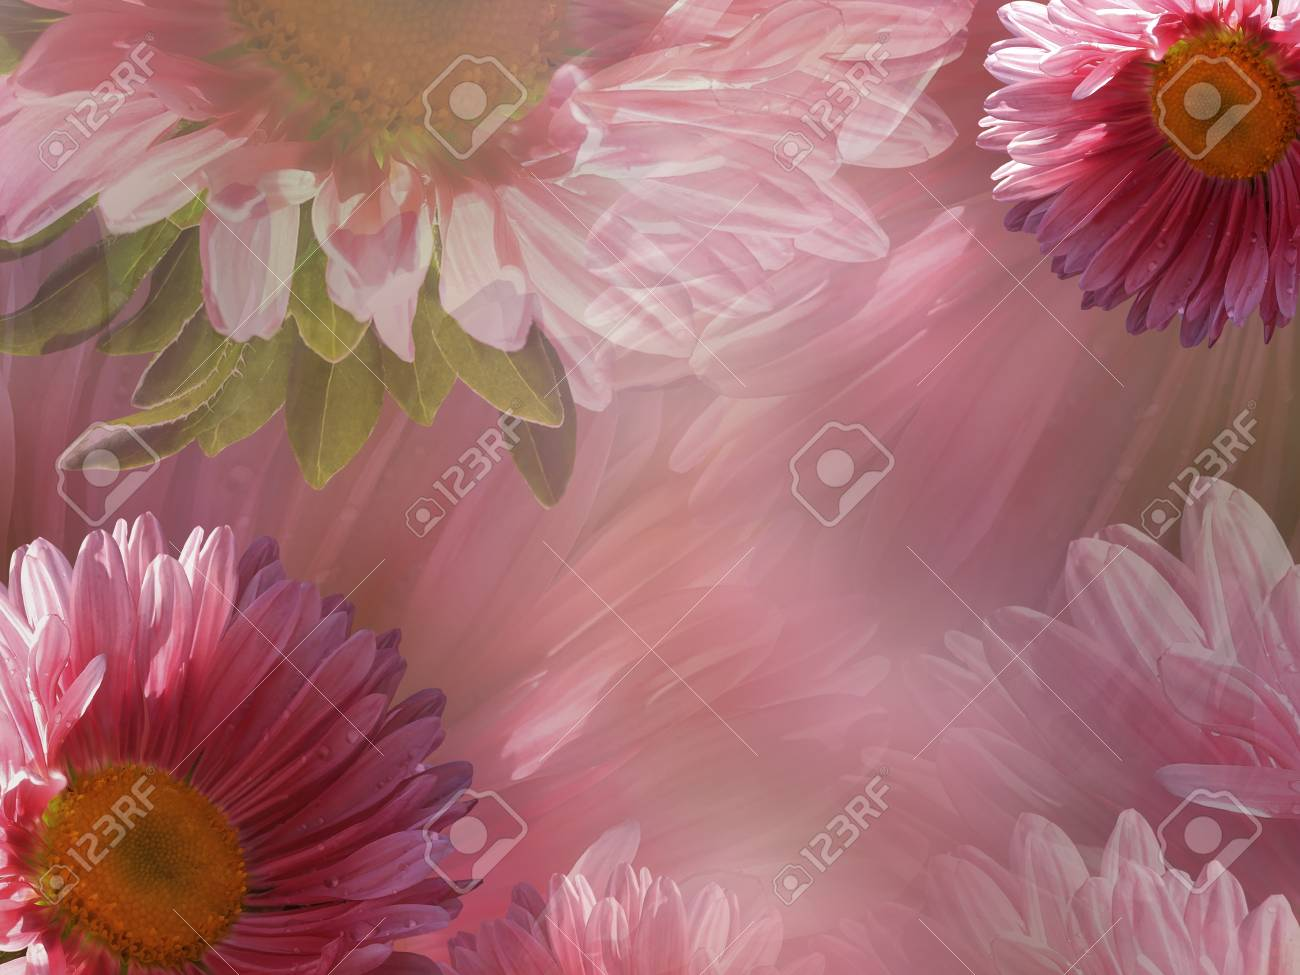 Floral pink white beautiful background of daisy wallpapers of floral pink white beautiful background of daisy wallpapers of flowers pink white chamomile izmirmasajfo Choice Image